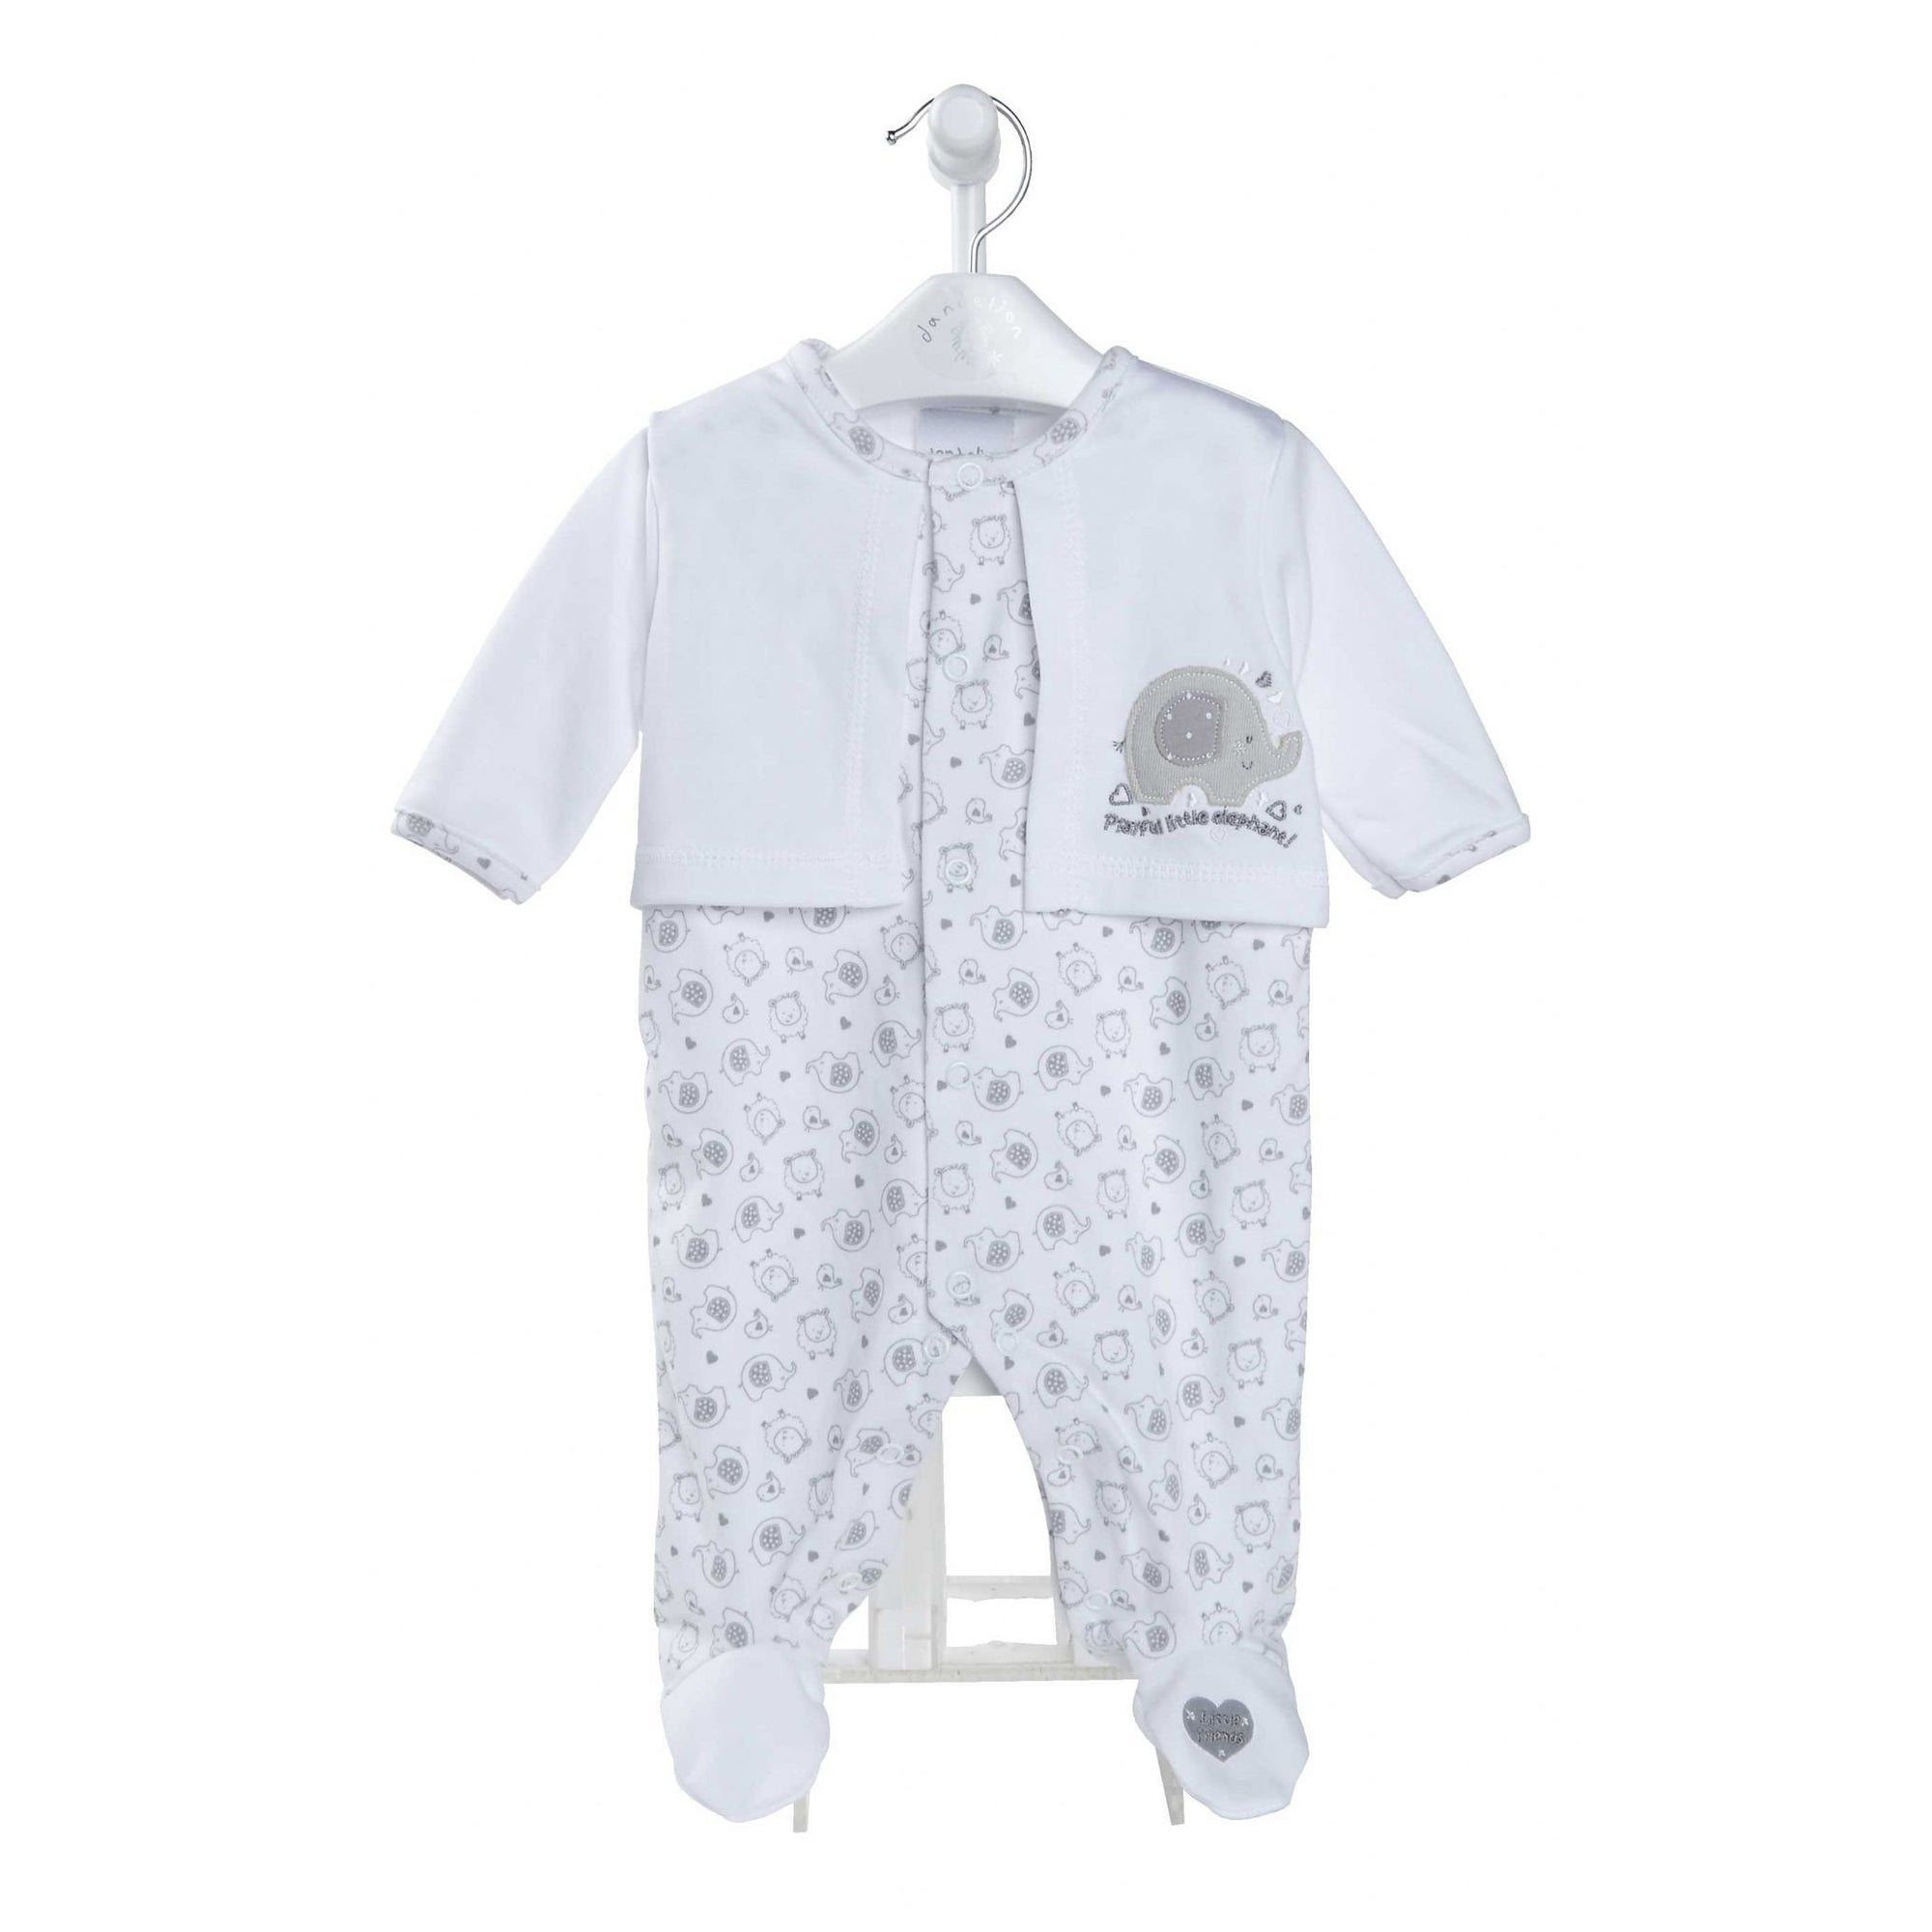 Dandelion White & Grey Animal Print Sleepsuit with Cardigan | Millie and John